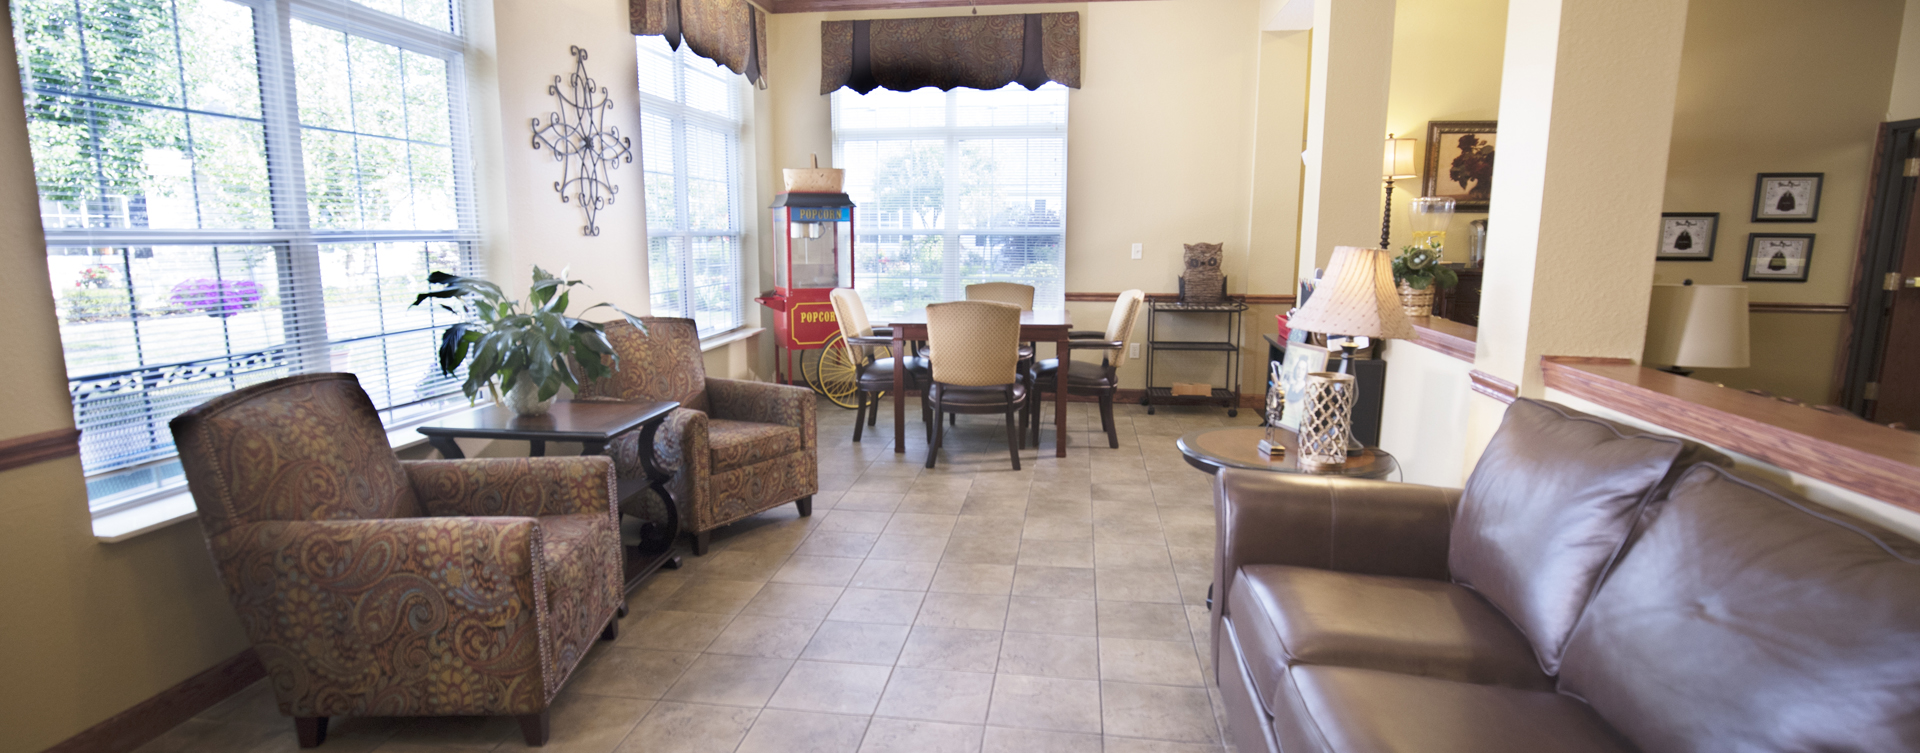 Relax in the warmth of the sunroom at Bickford of Quincy